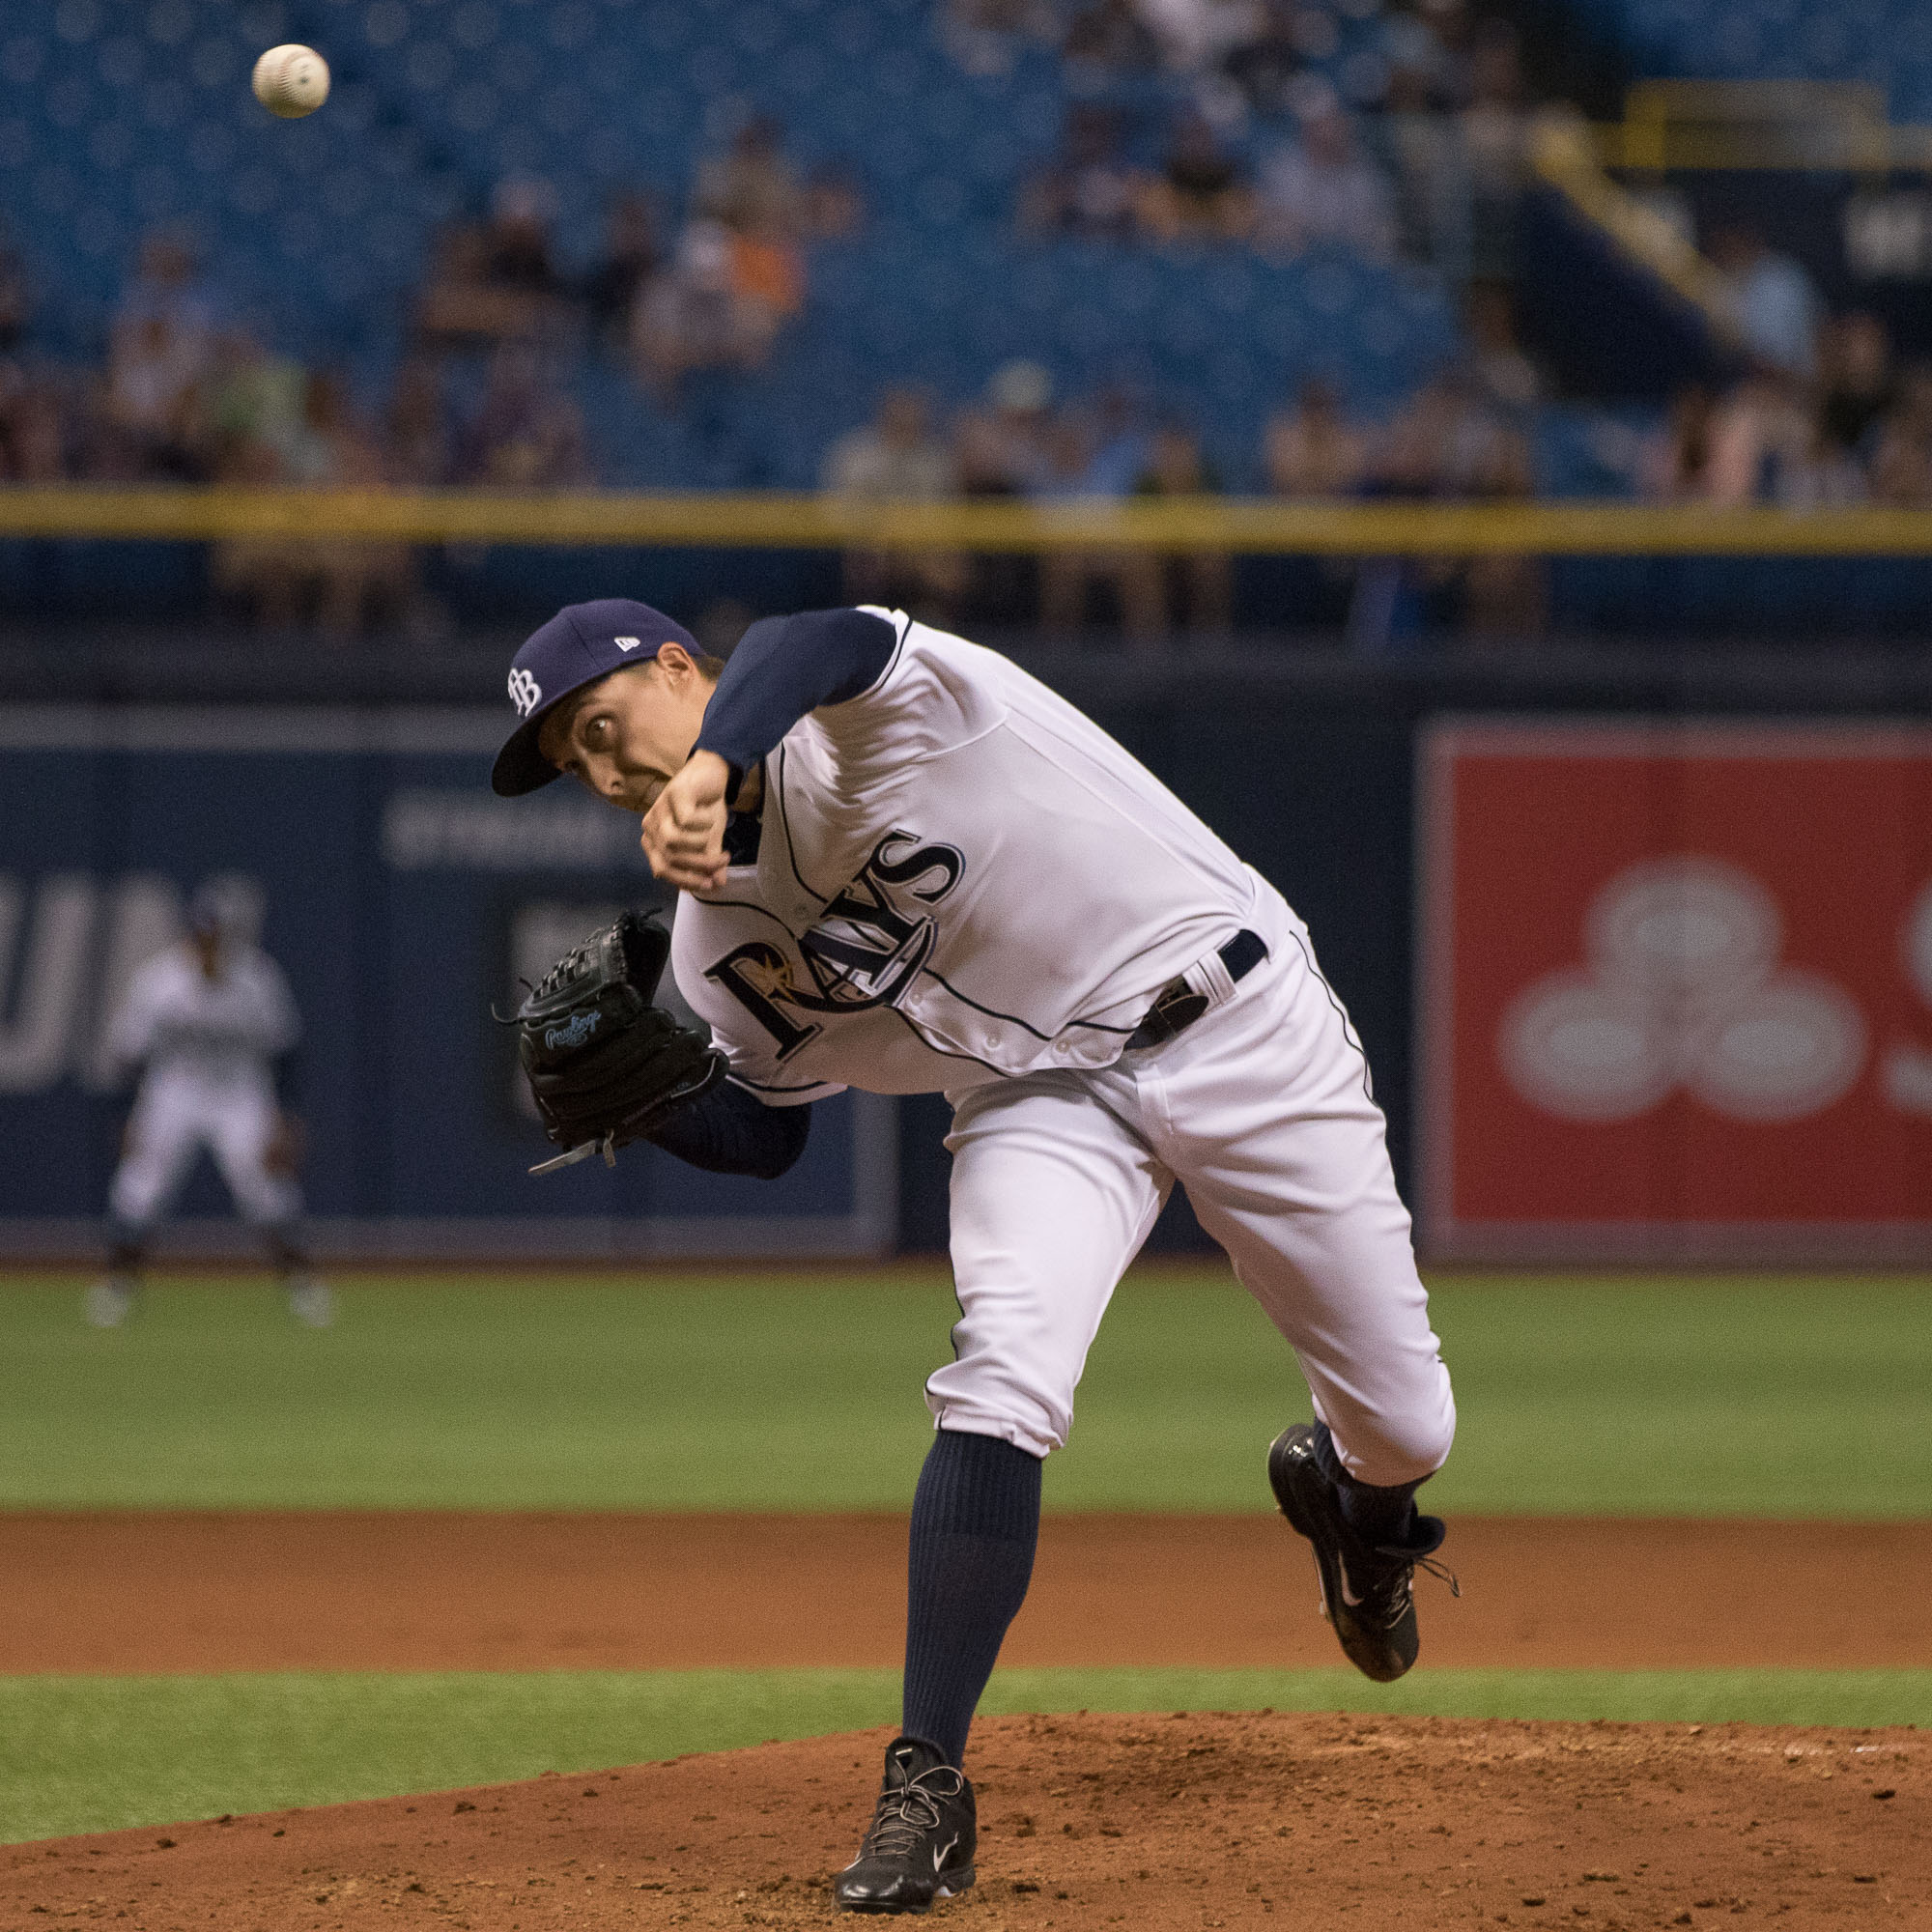 Blake Snell will try to find himself in the minors./Steven Muncie